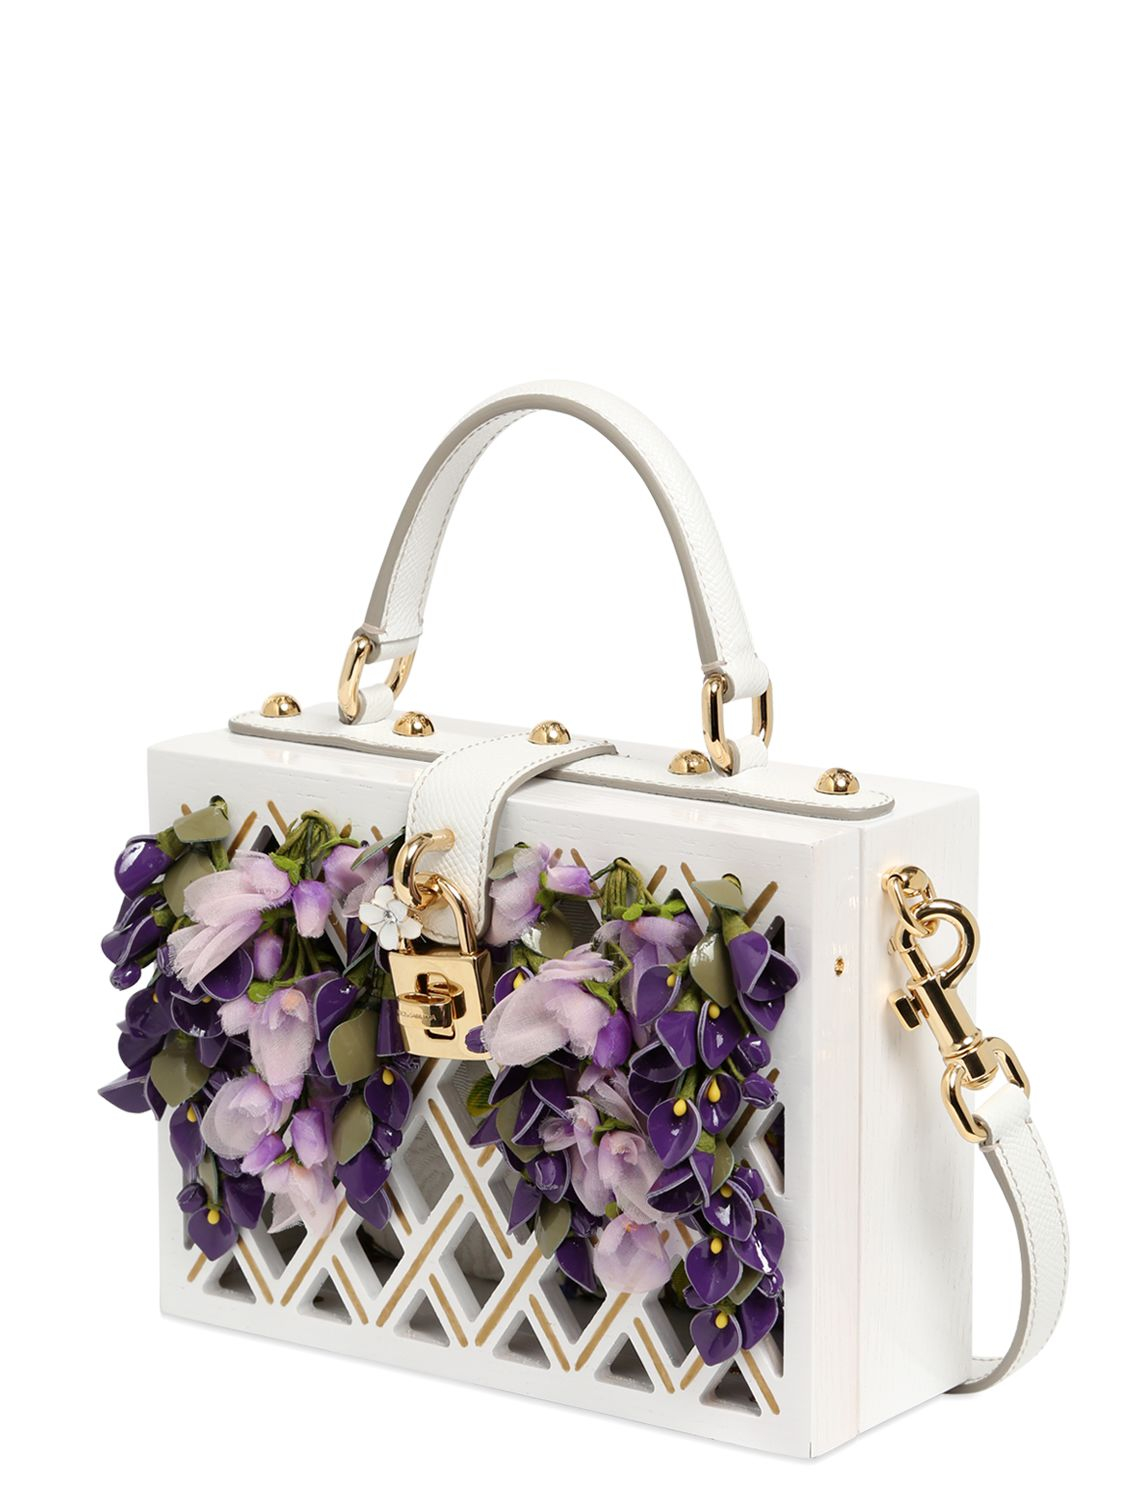 252c837fd5b Dolce & Gabbana Dolce Wooden Bag With Floral Details in White - Lyst